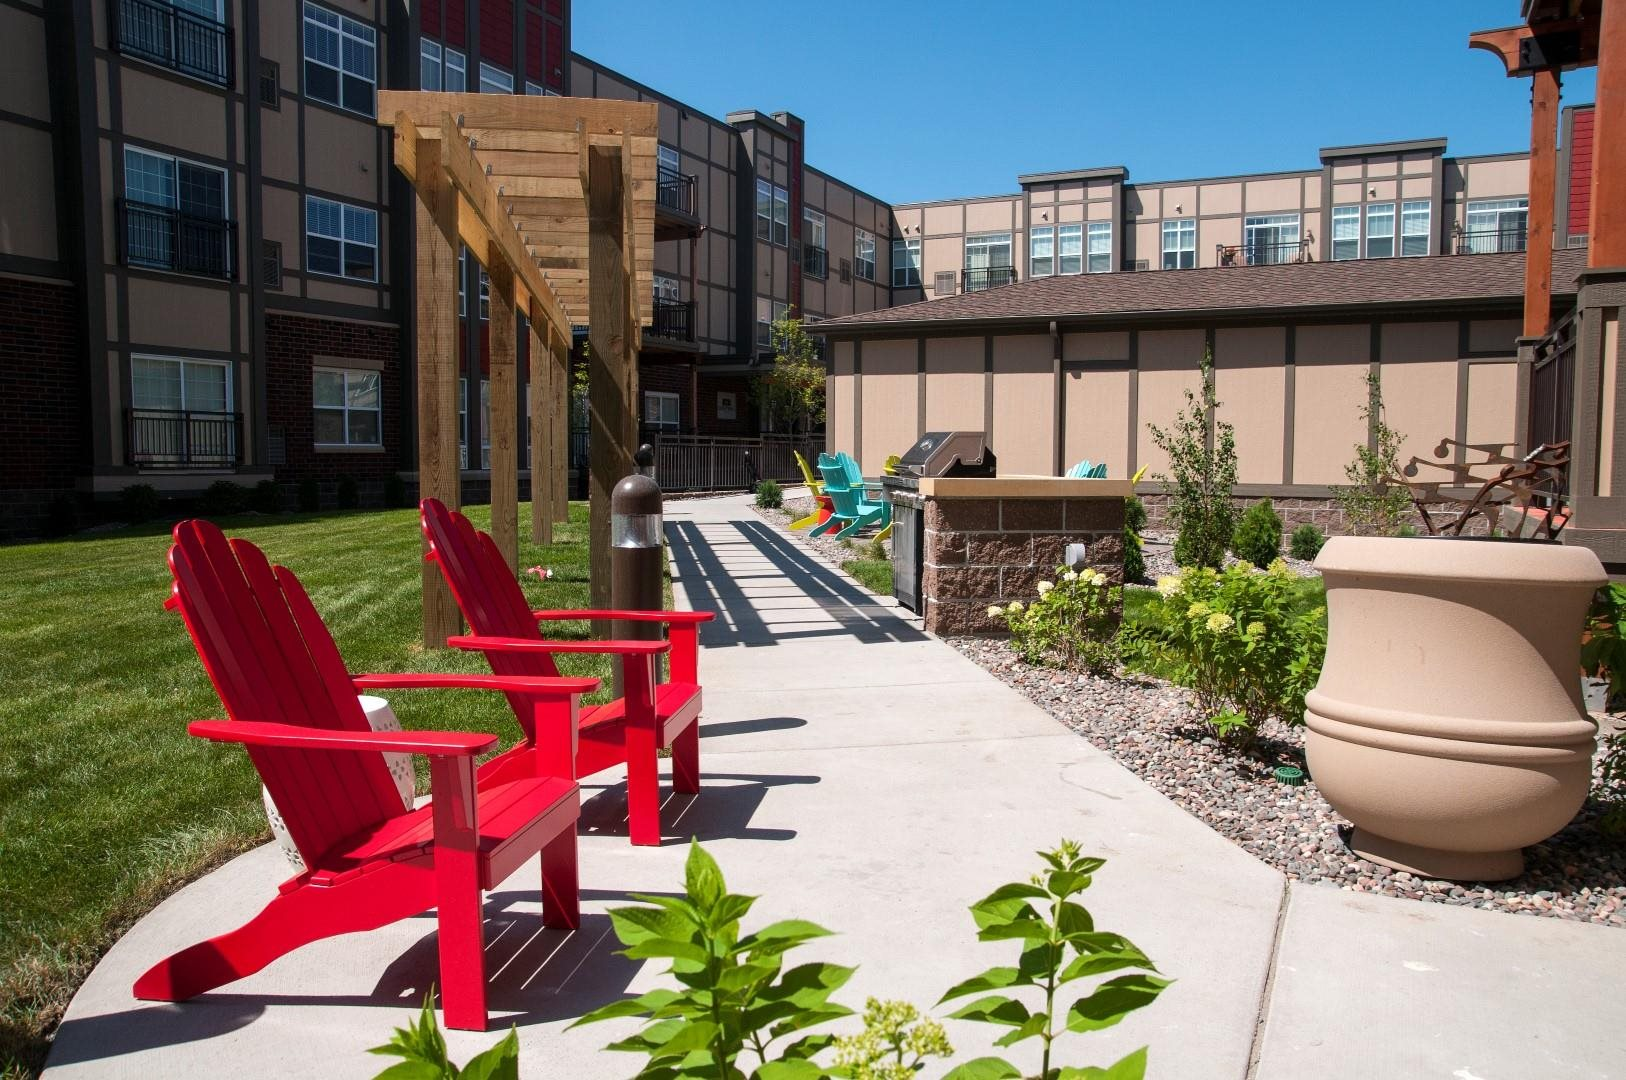 BBQ and Picnic Area at 5 Central Apartments, Minnesota